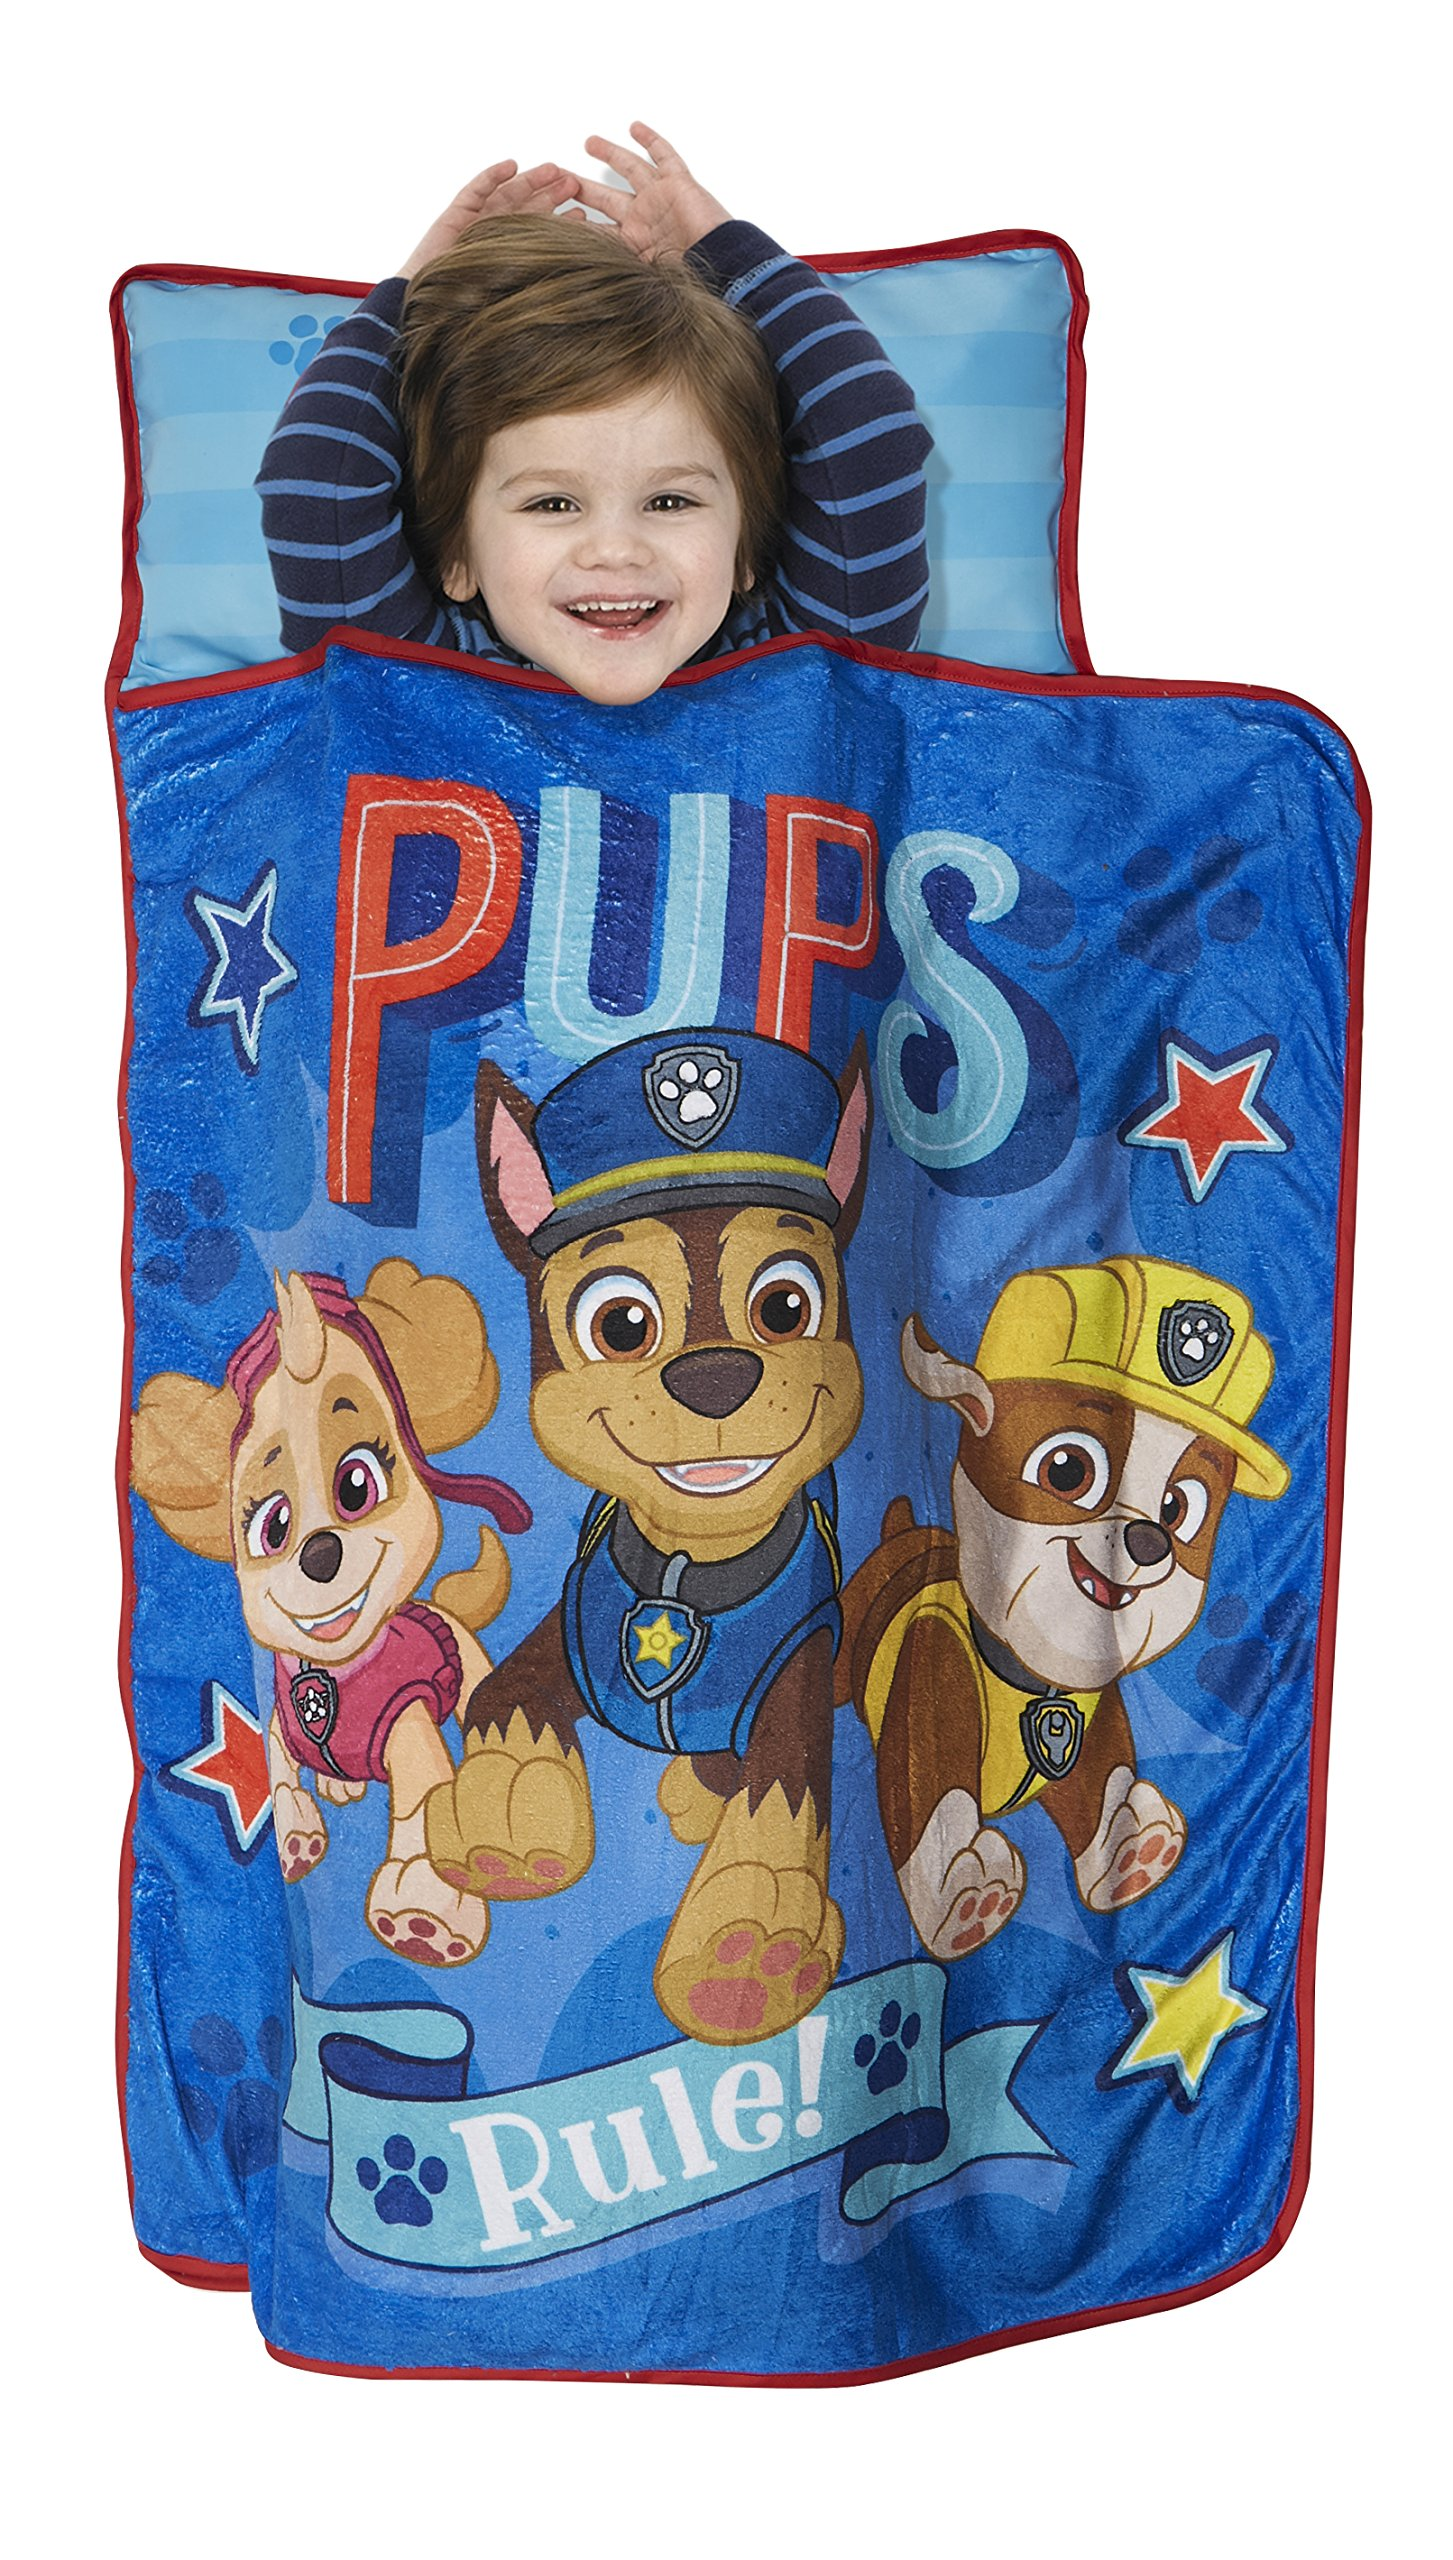 Paw Patrol Pups Rule Toddler Nap Mat - Includes Pillow & Fleece Blanket – Great for Boys and Girls Napping at Daycare, Preschool, Or Kindergarten - Fits Sleeping Toddlers and Young Children